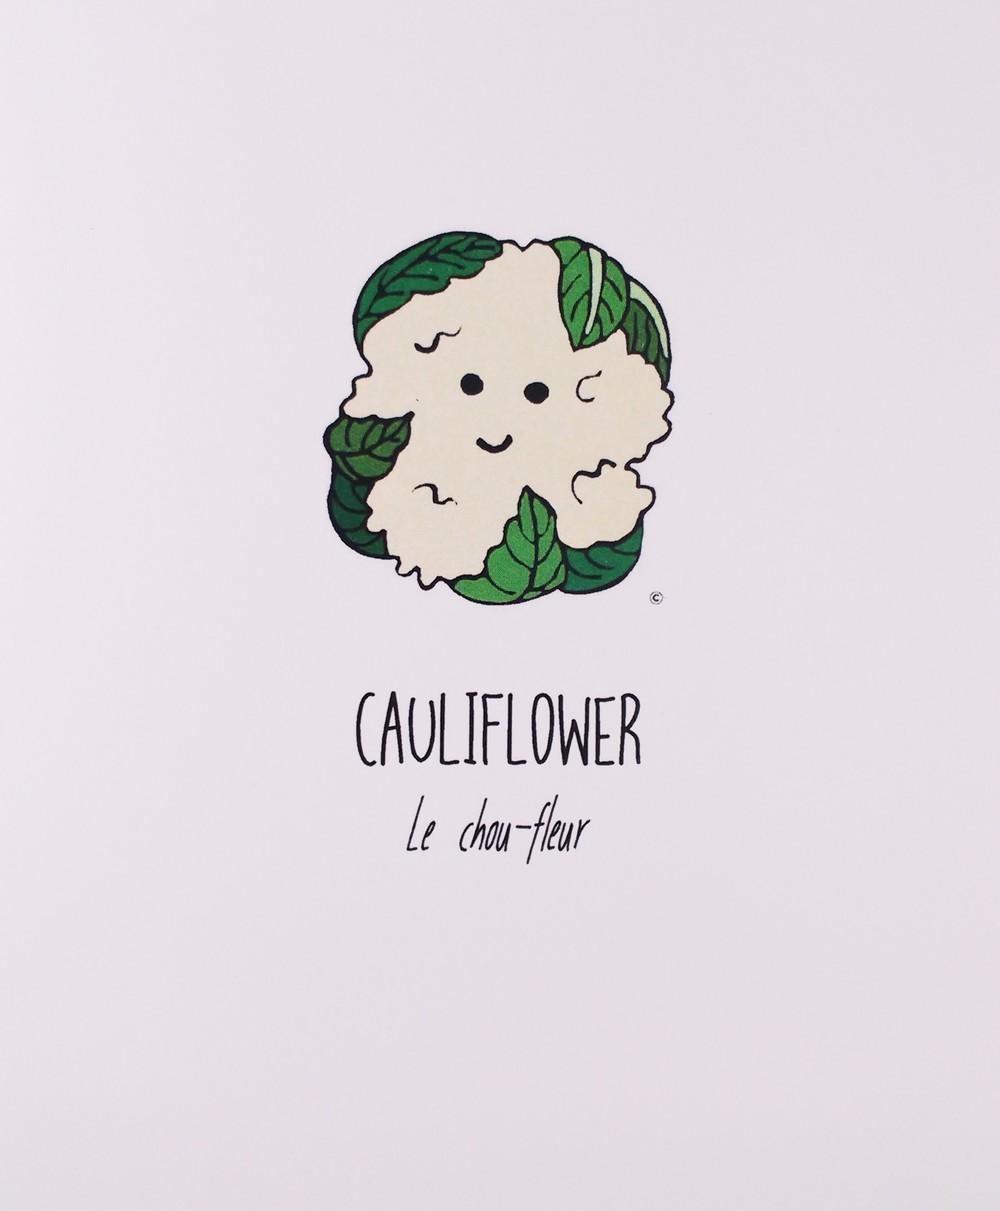 The Cauliflower Collection